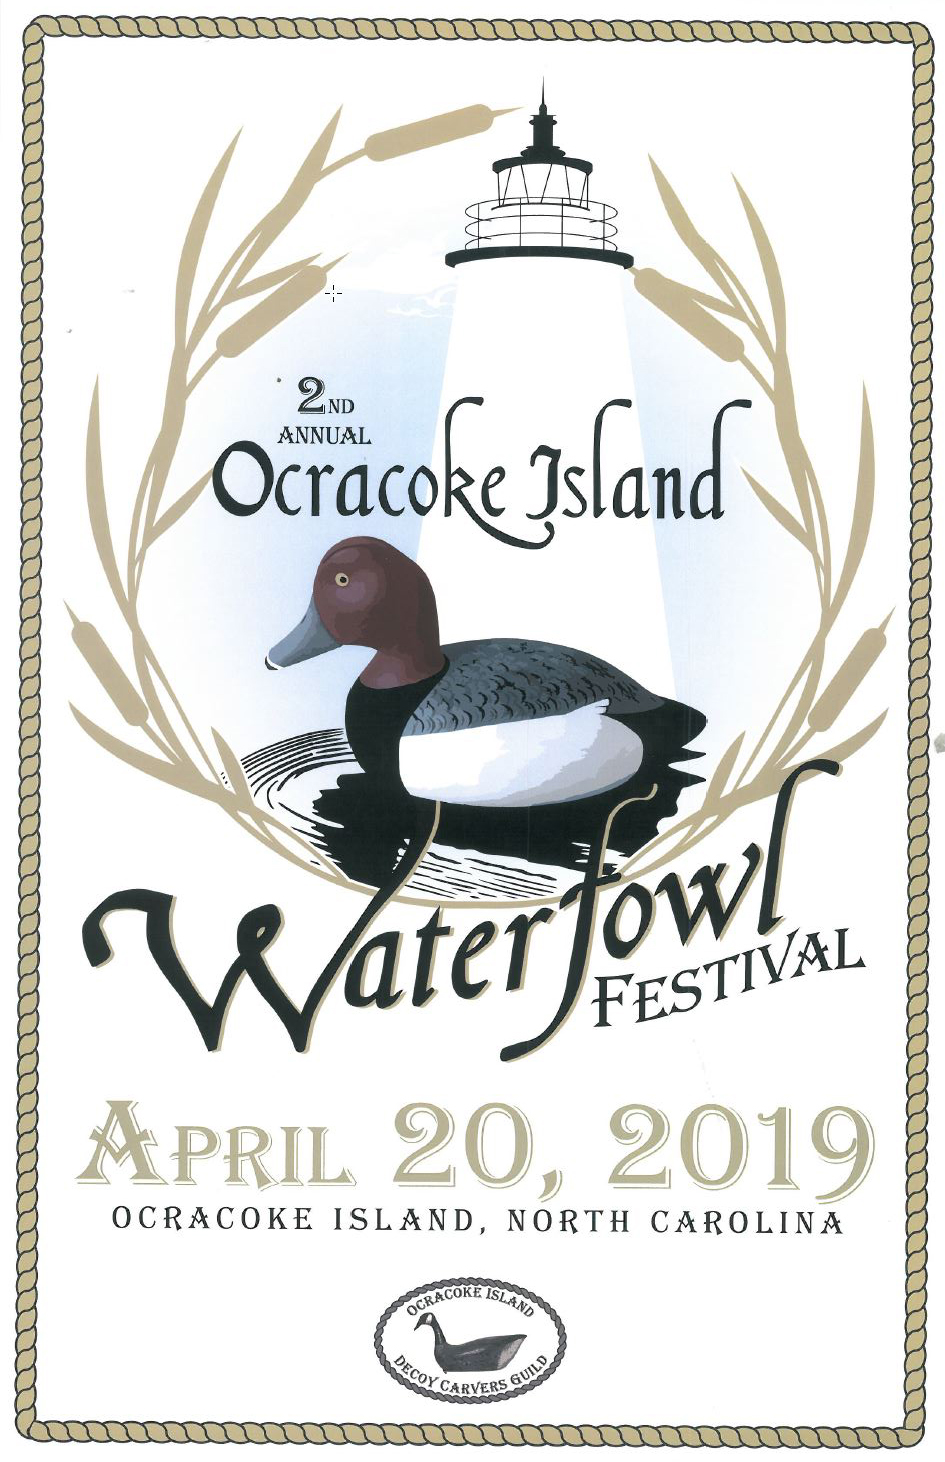 2nd Annual Ocracoke Island Waterfowl Festival